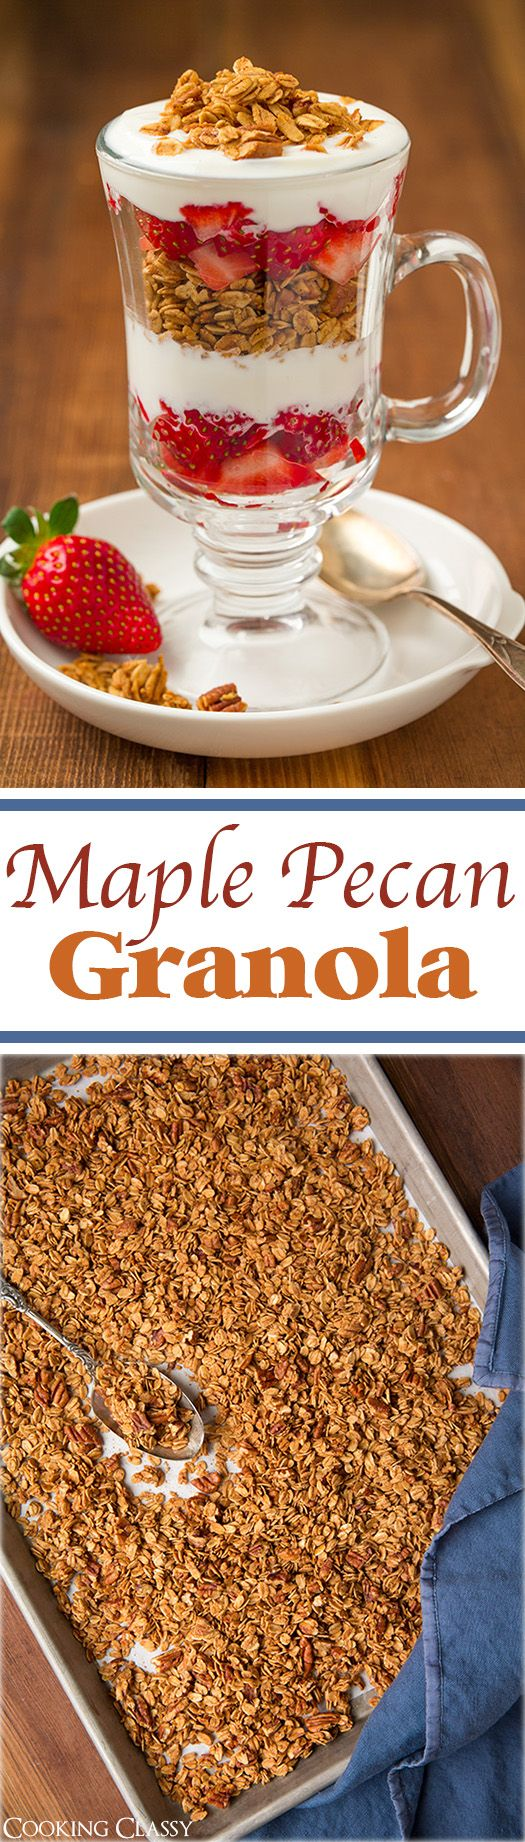 1000+ images about Yogurt and granola on Pinterest ...